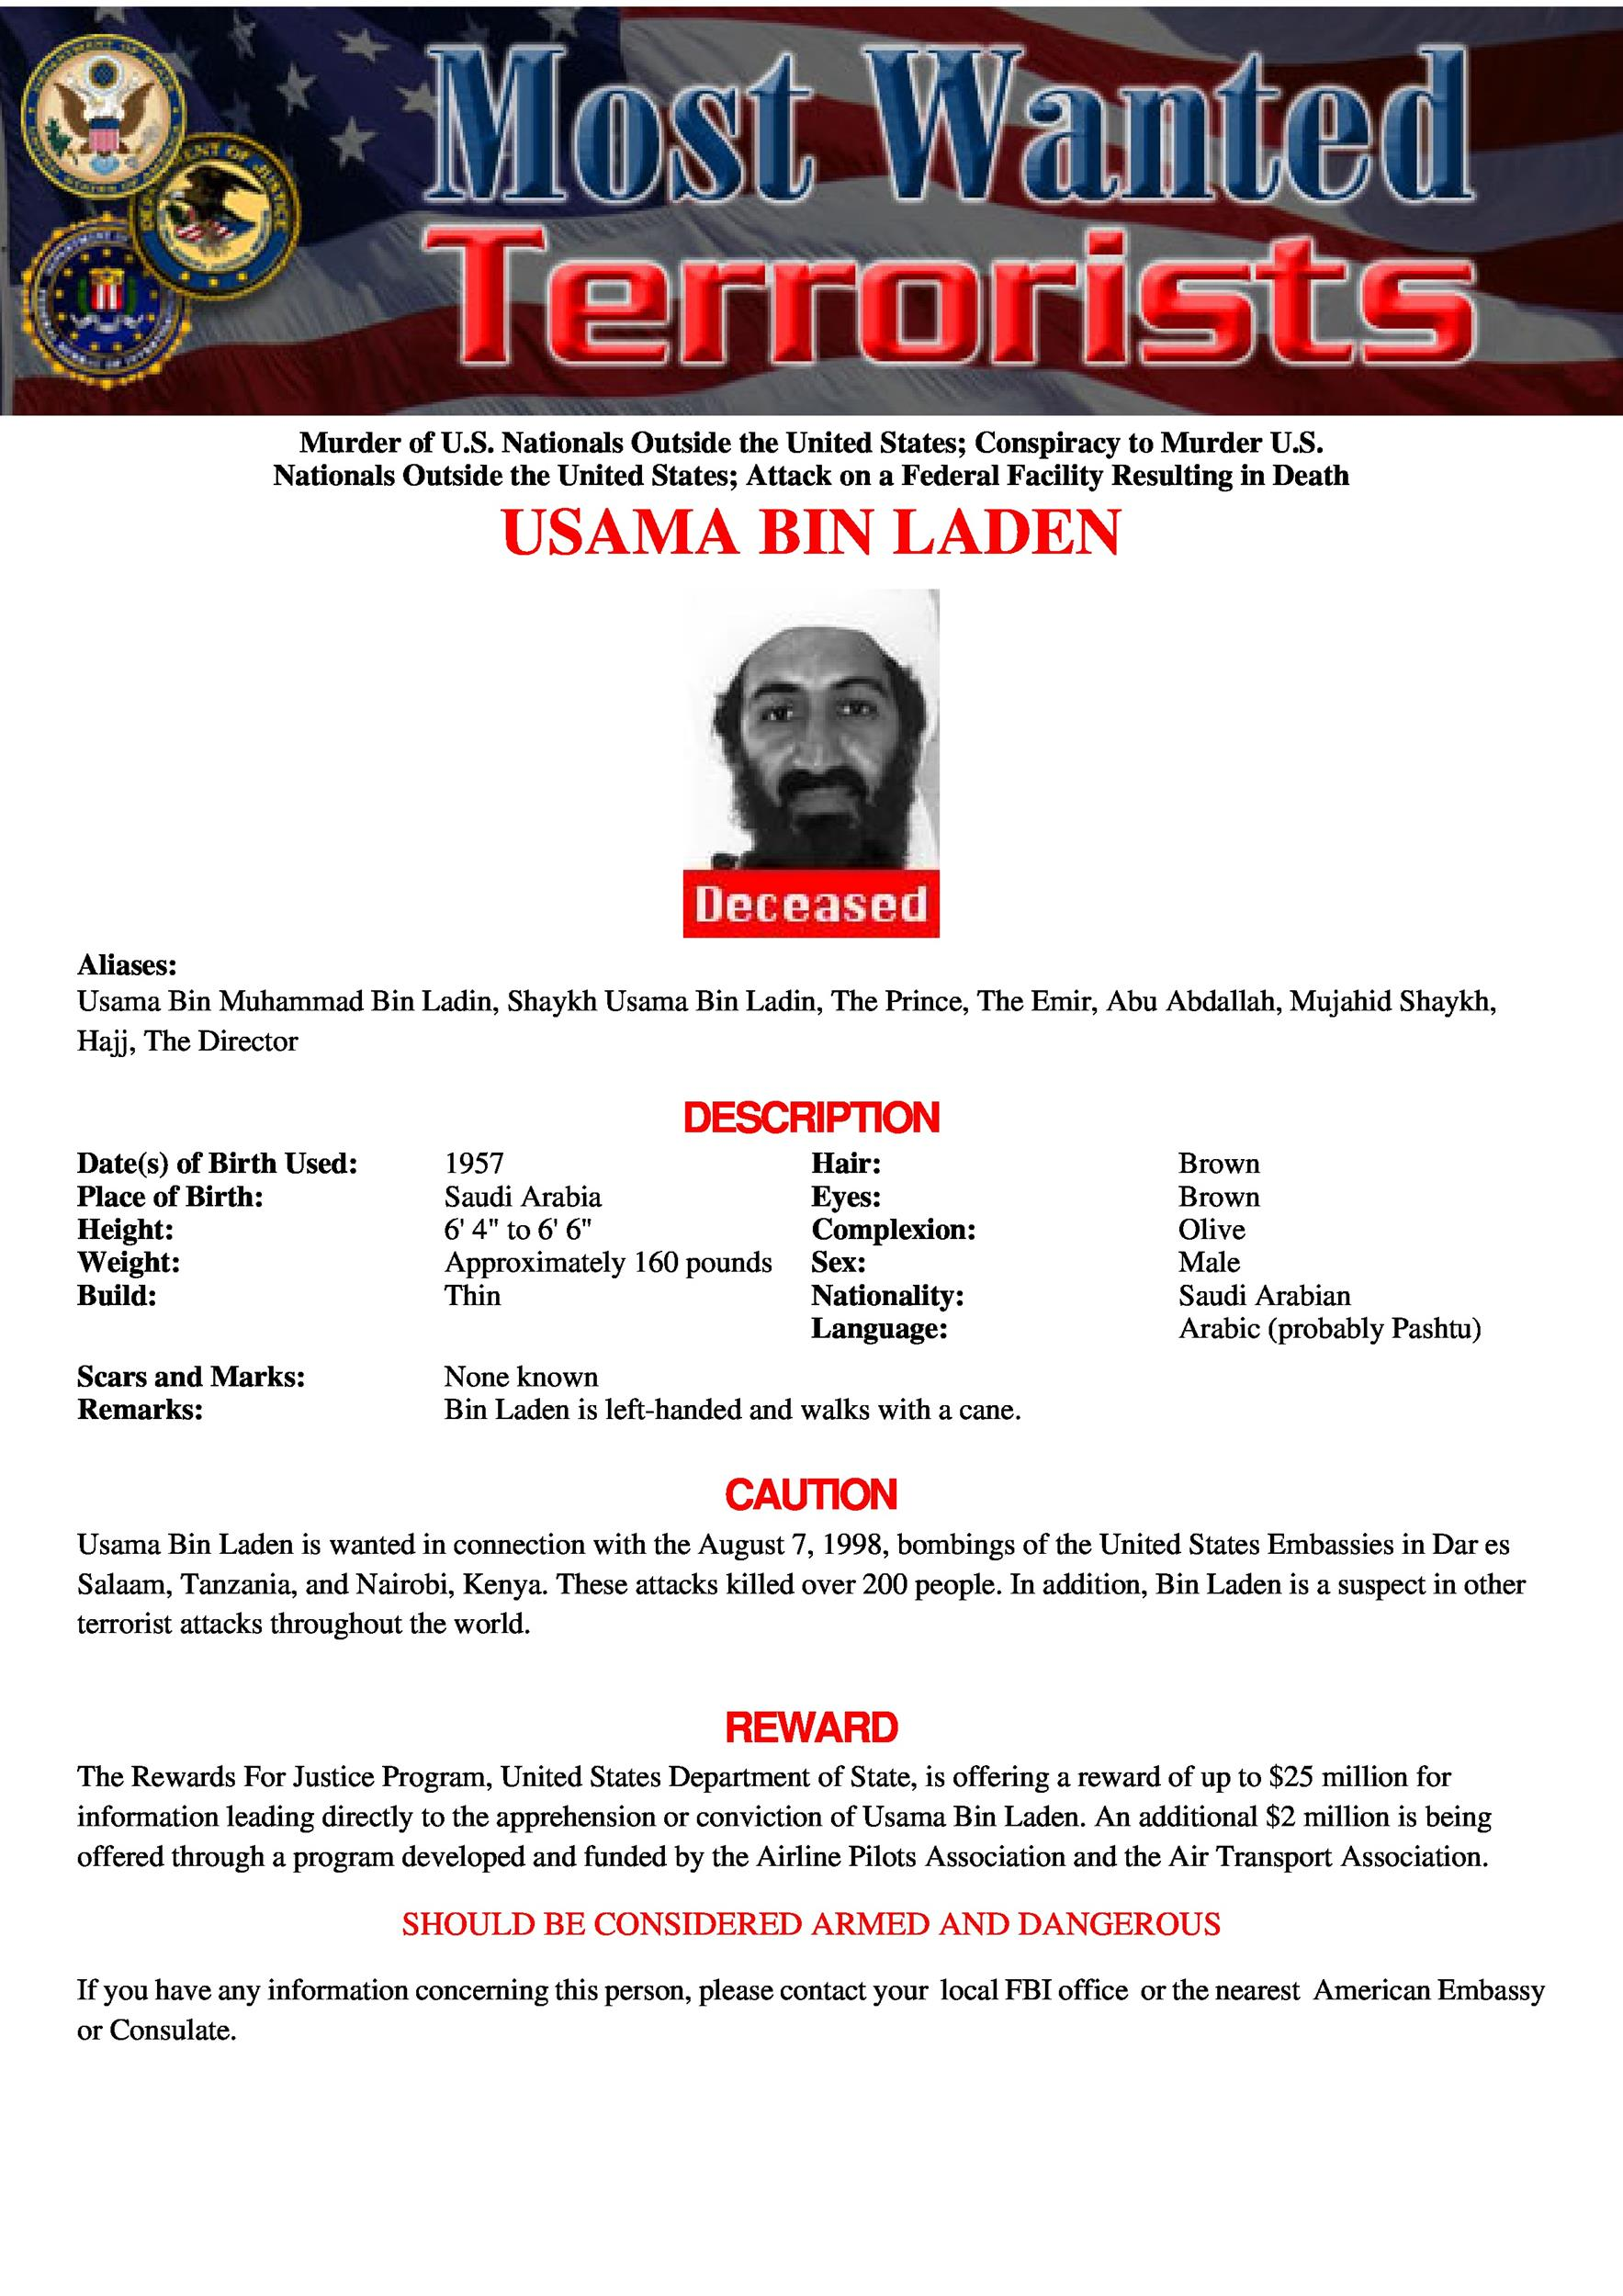 FBI wanted poster template 02